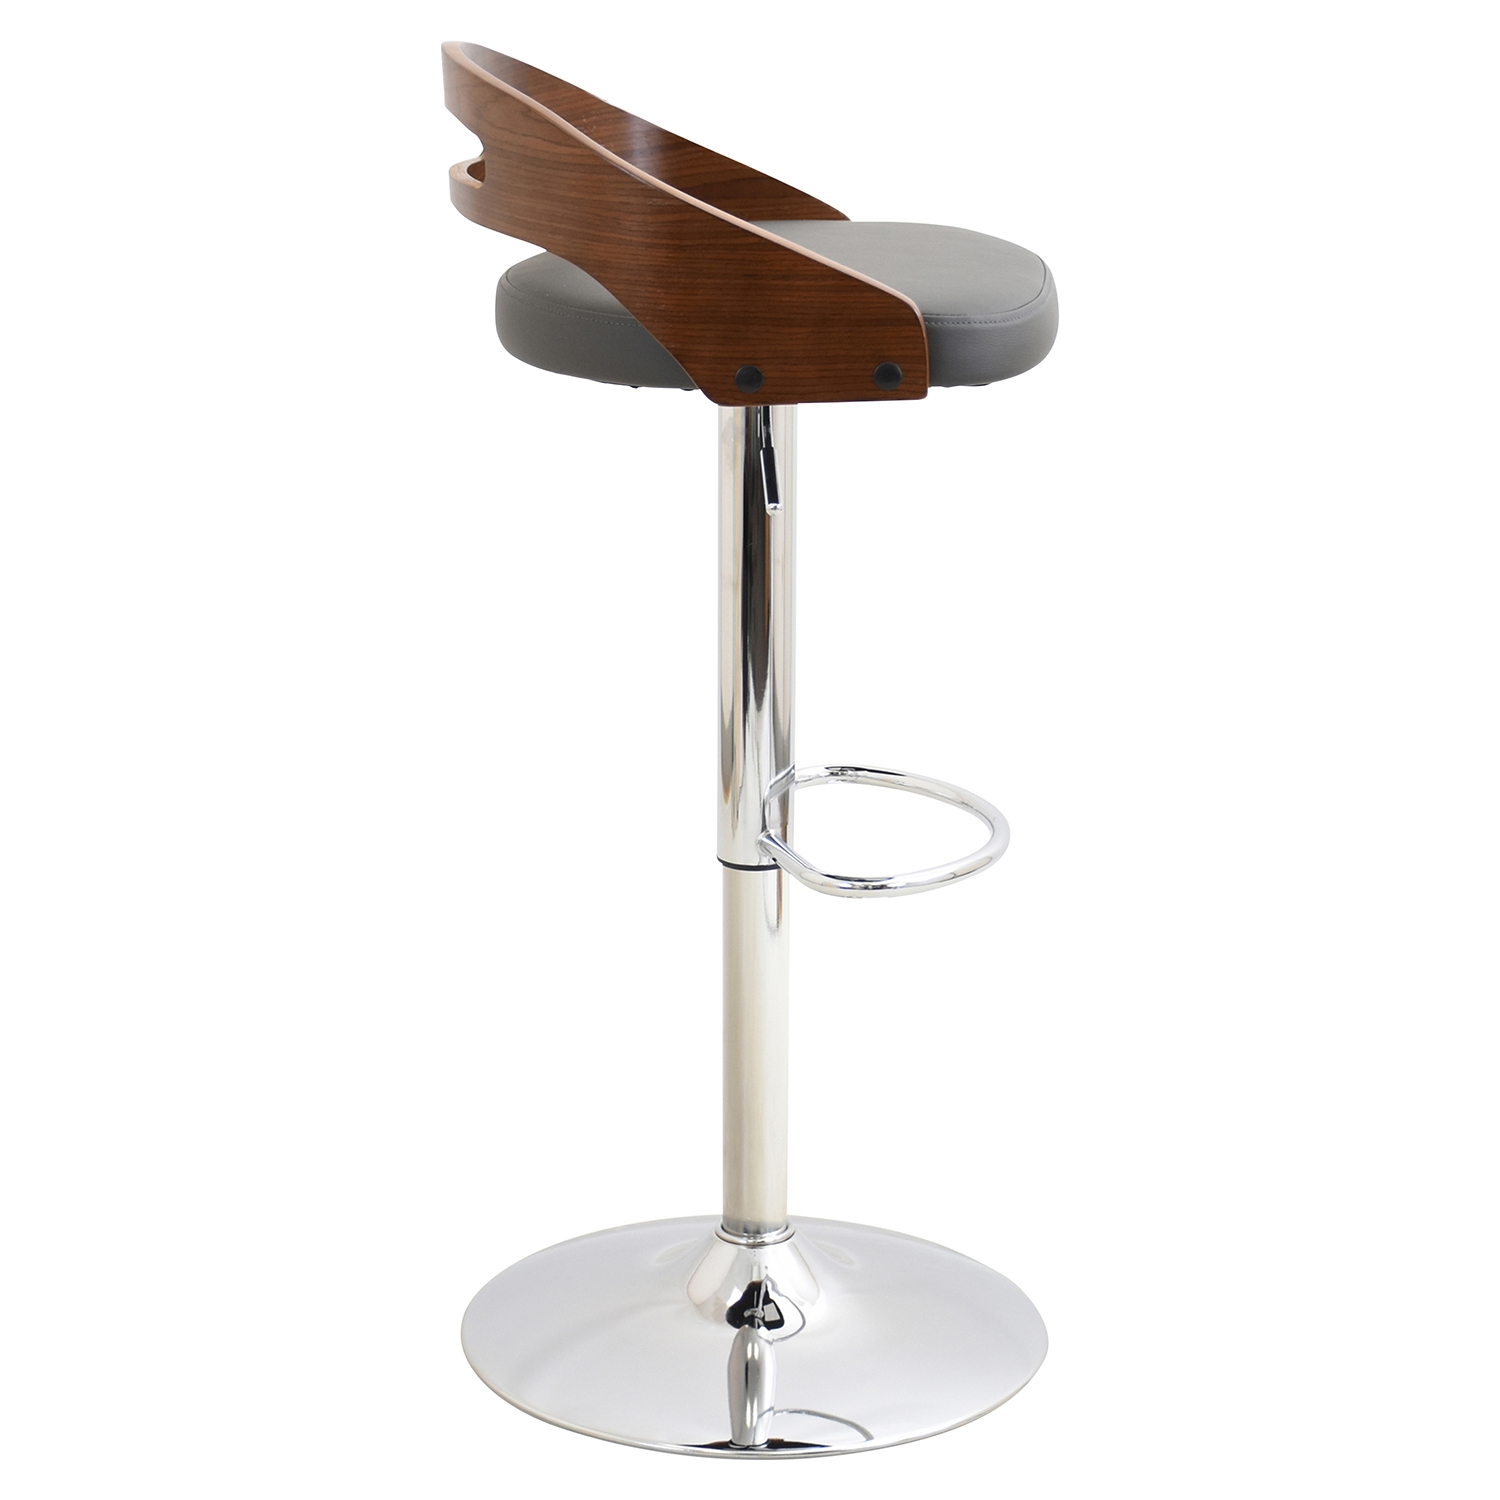 Cassis Height Adjustable Barstool - Swivel, Height Adjustable - LMS-BS-CASS-WL-GY